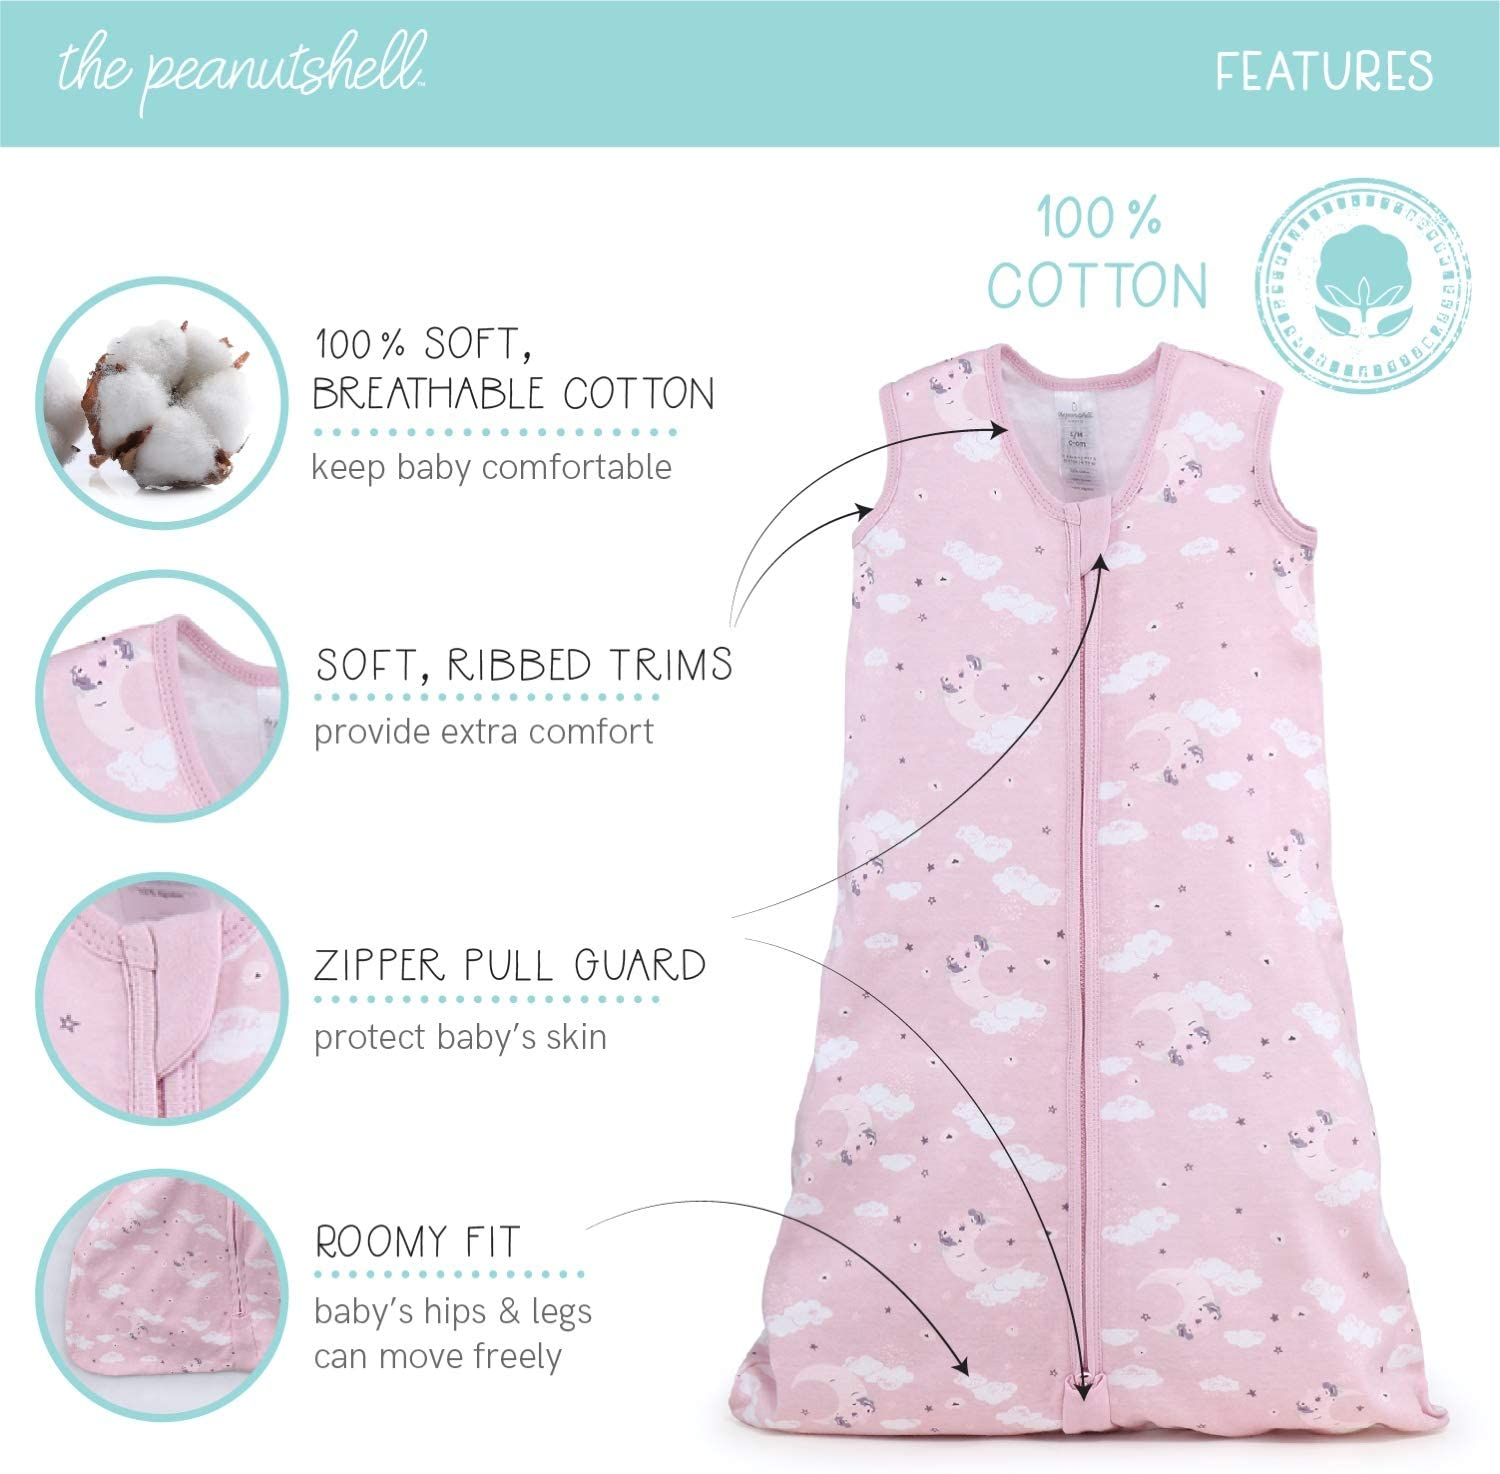 Small//Medium The Peanutshell Wearable Blanket Sleep Sack for Baby Girls Pink Moon /& Celestial Sizes up to 12 Months